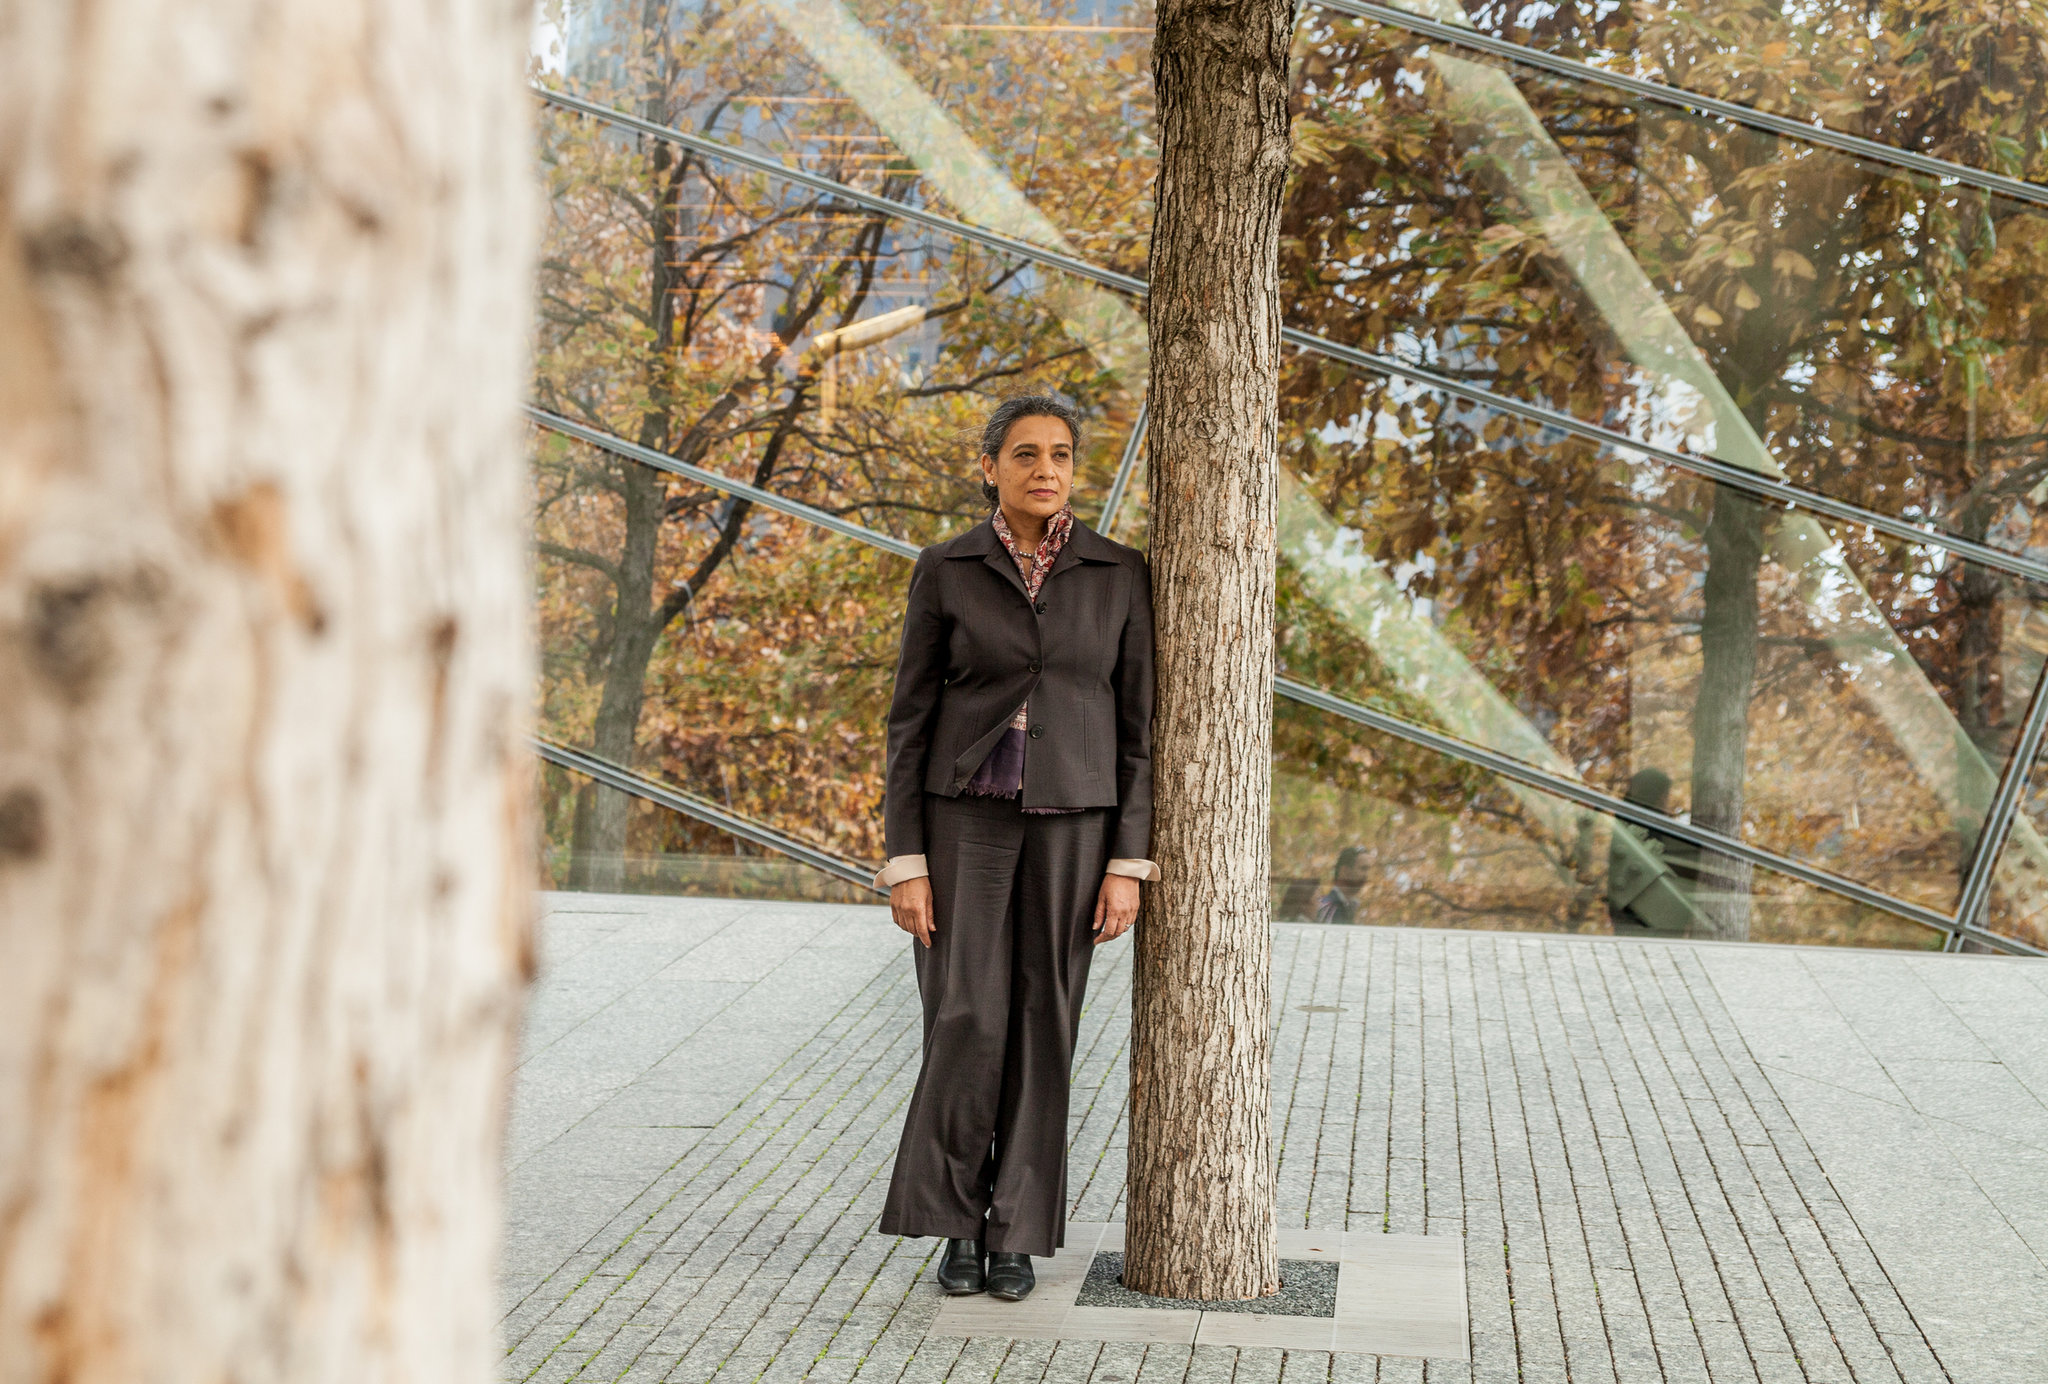 K. Sujata, president and chief executive of the Chicago Foundation for Women, oversaw a merger in 2012, when her nonprofit group took over the Eleanor Foundation. Credit George Etheredge for The New York Times